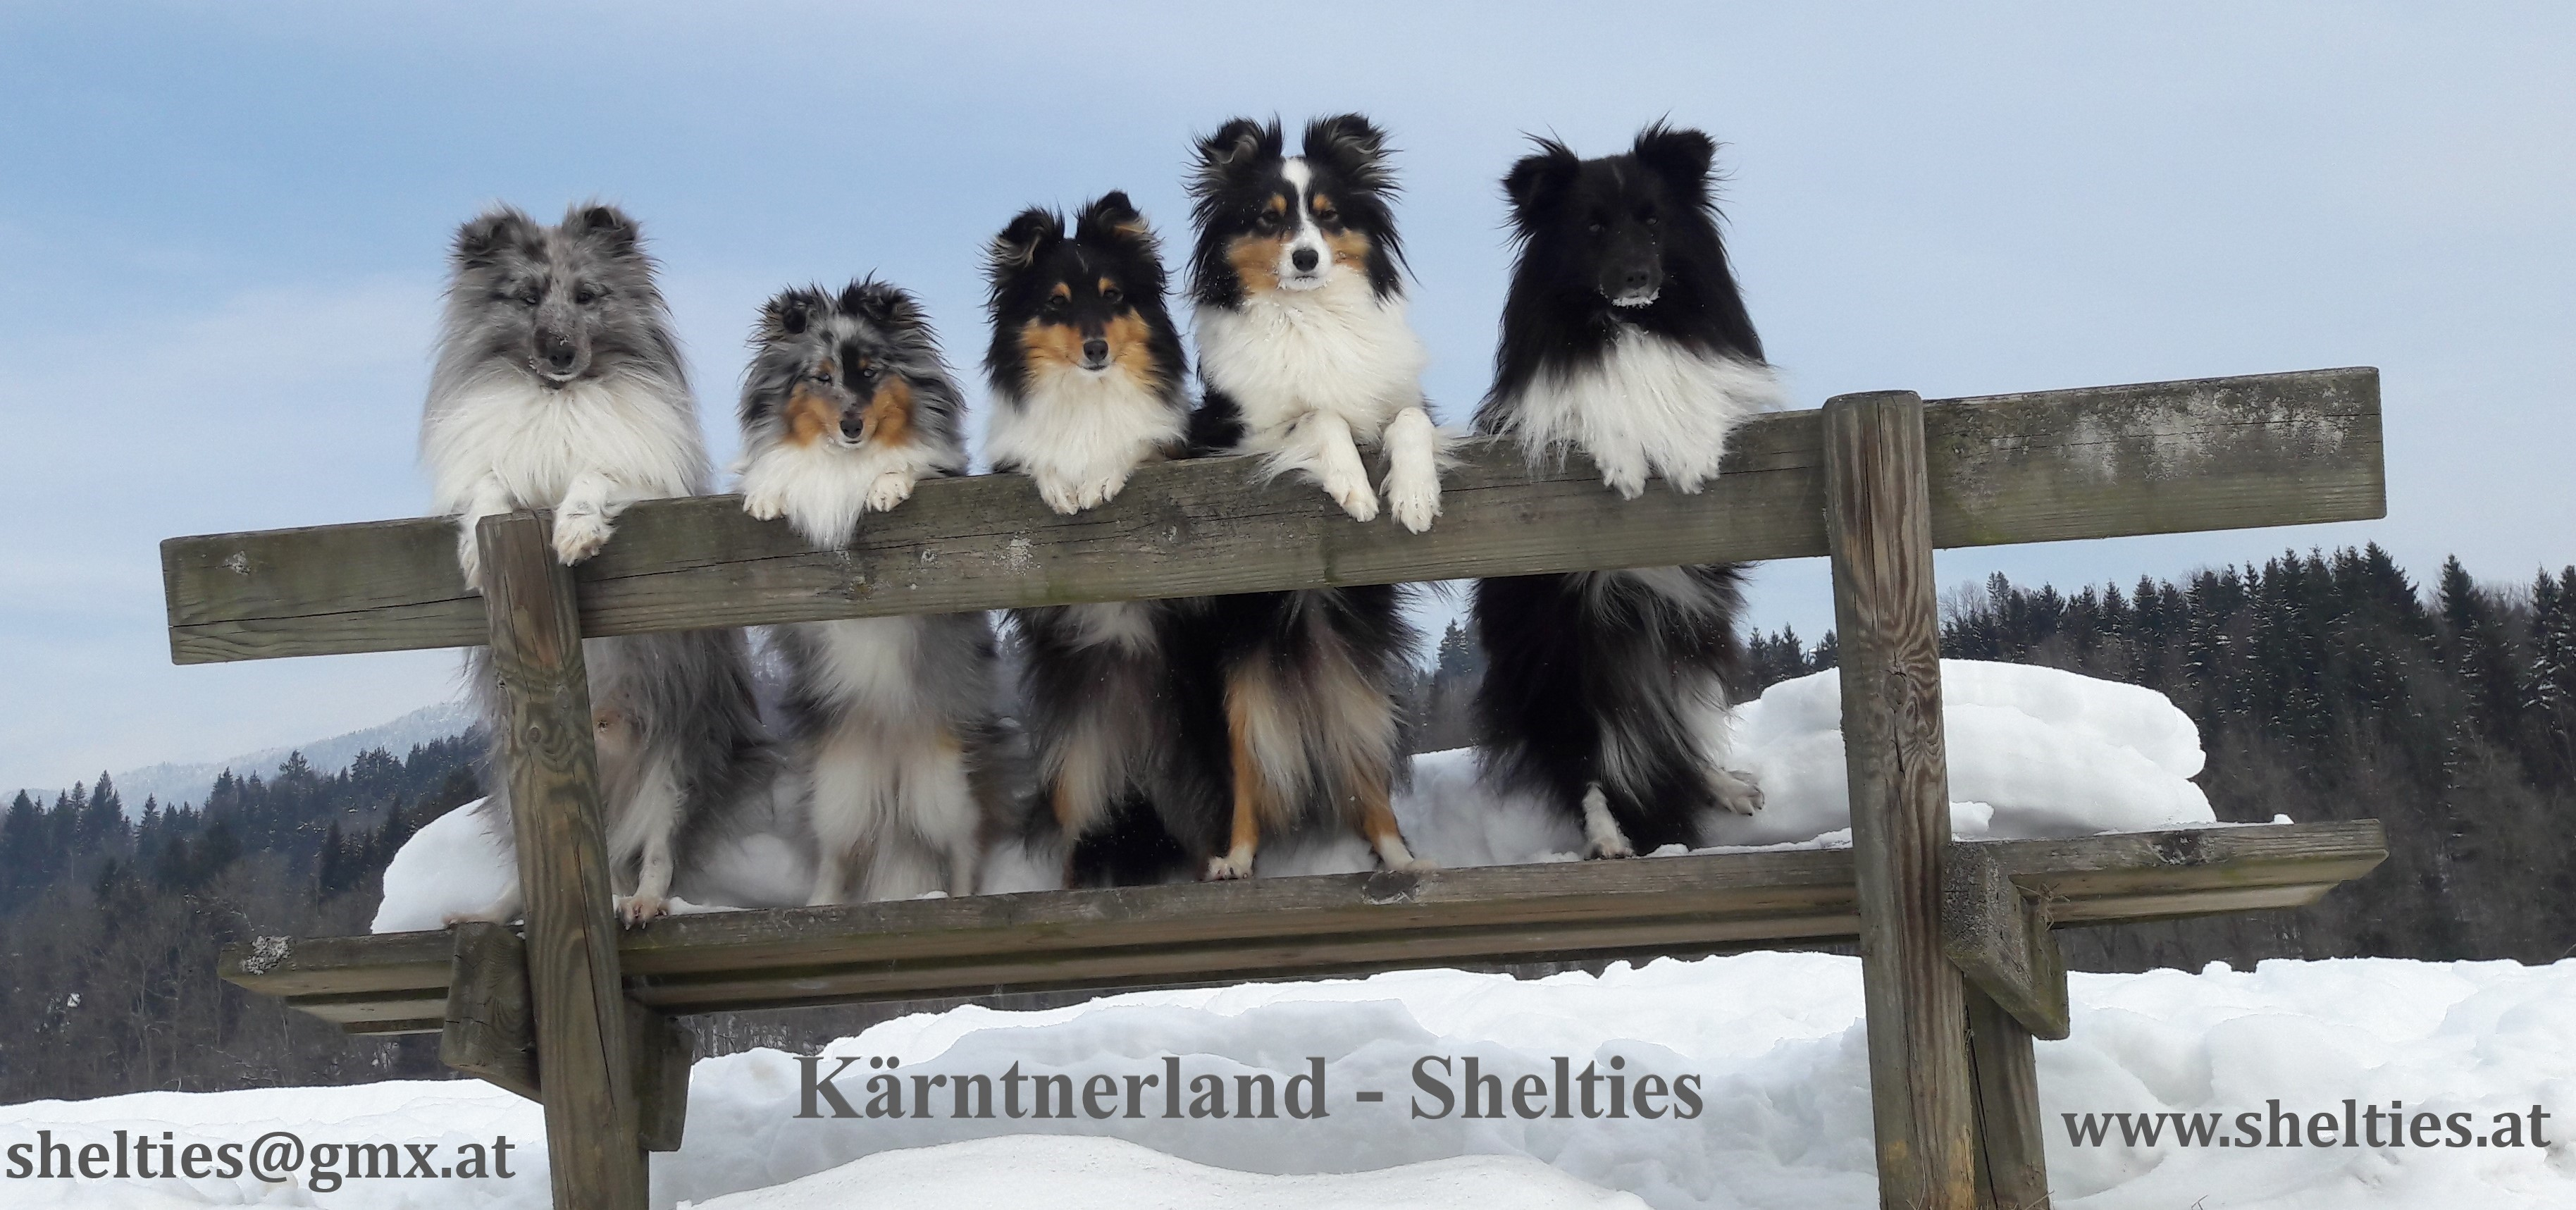 Kärntnerland-Shelties